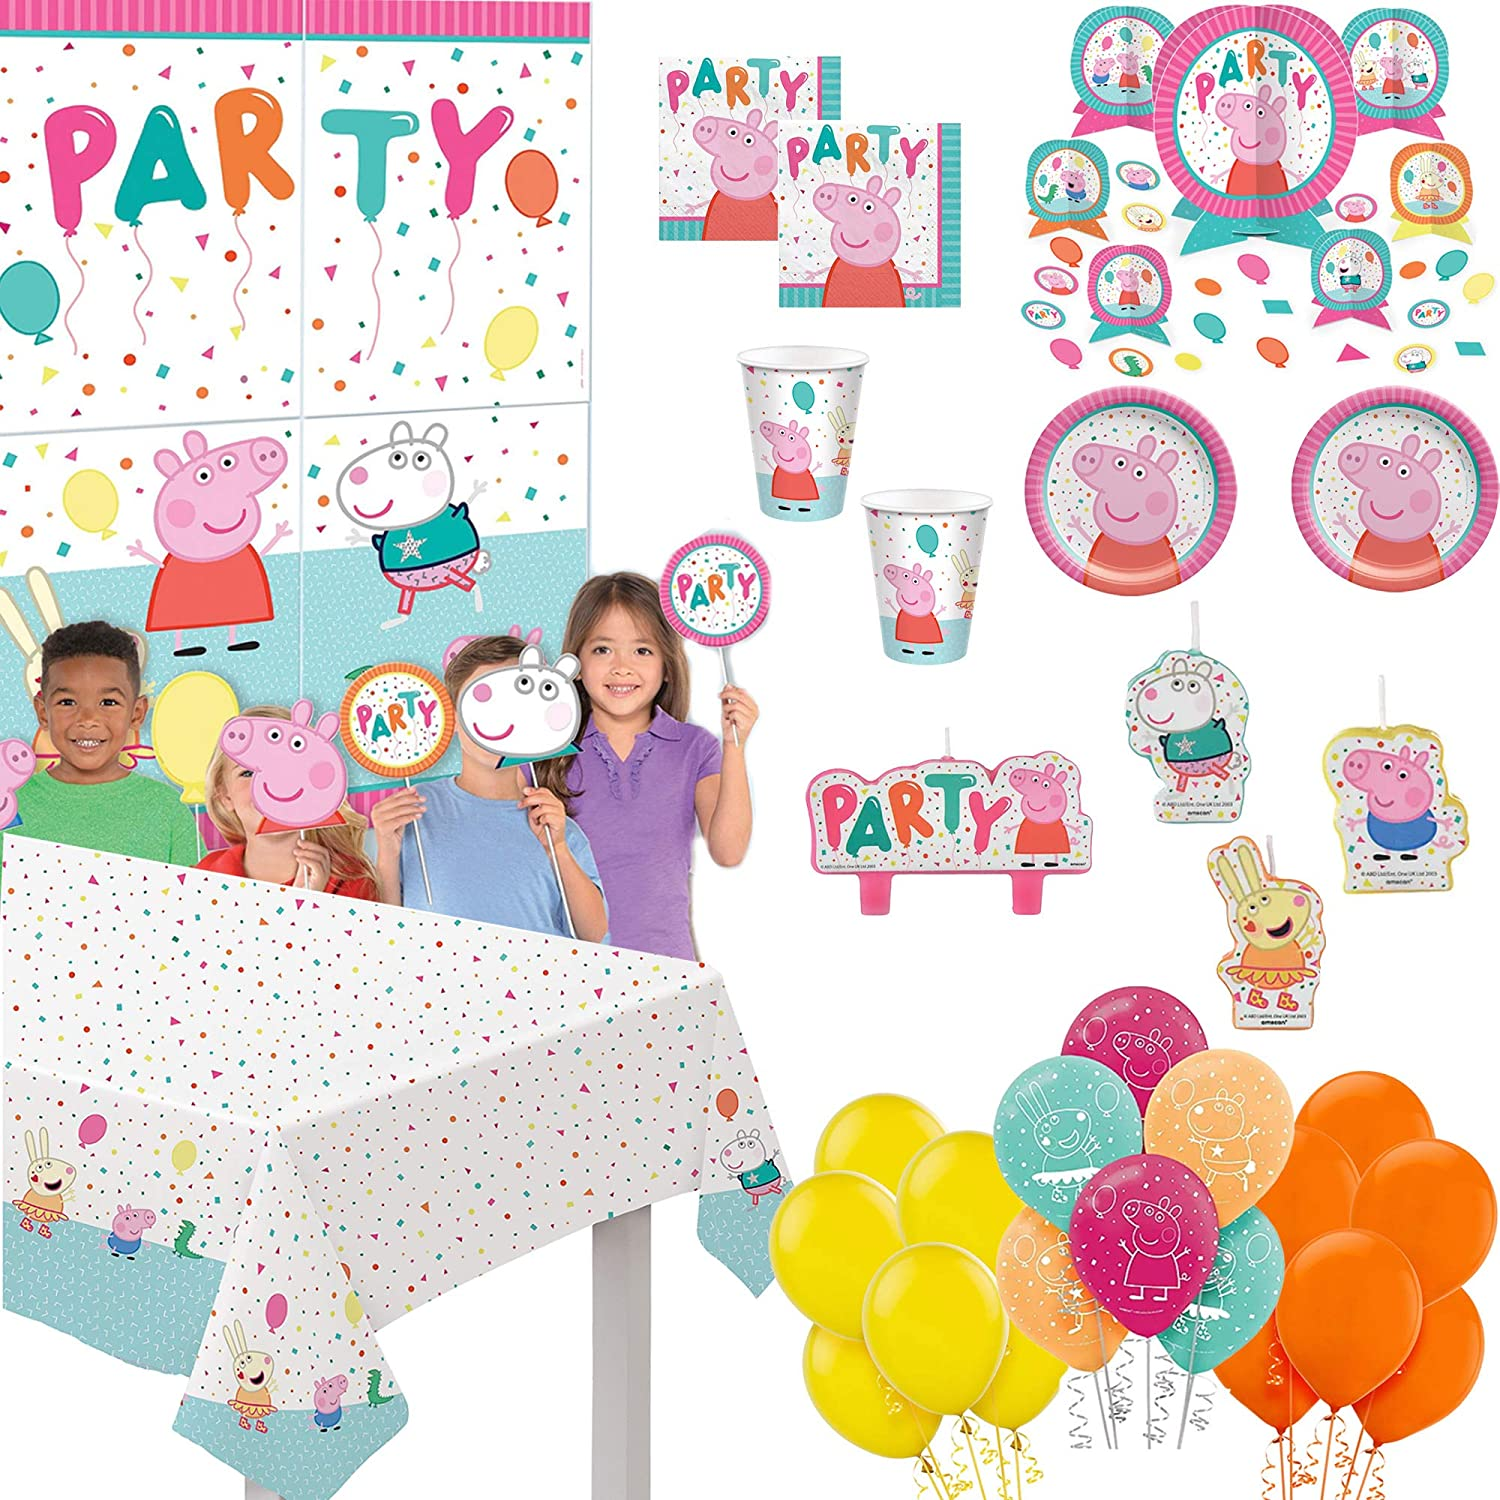 Peppa Pig Birthday Party Supplies and Decoration Pack for 16: Plates, Napkins, Cups, Table cover, Table Decoration, Candle, Peppa Pig Balloons, Wall Decoration kit, Yellow and Orange Balloons.